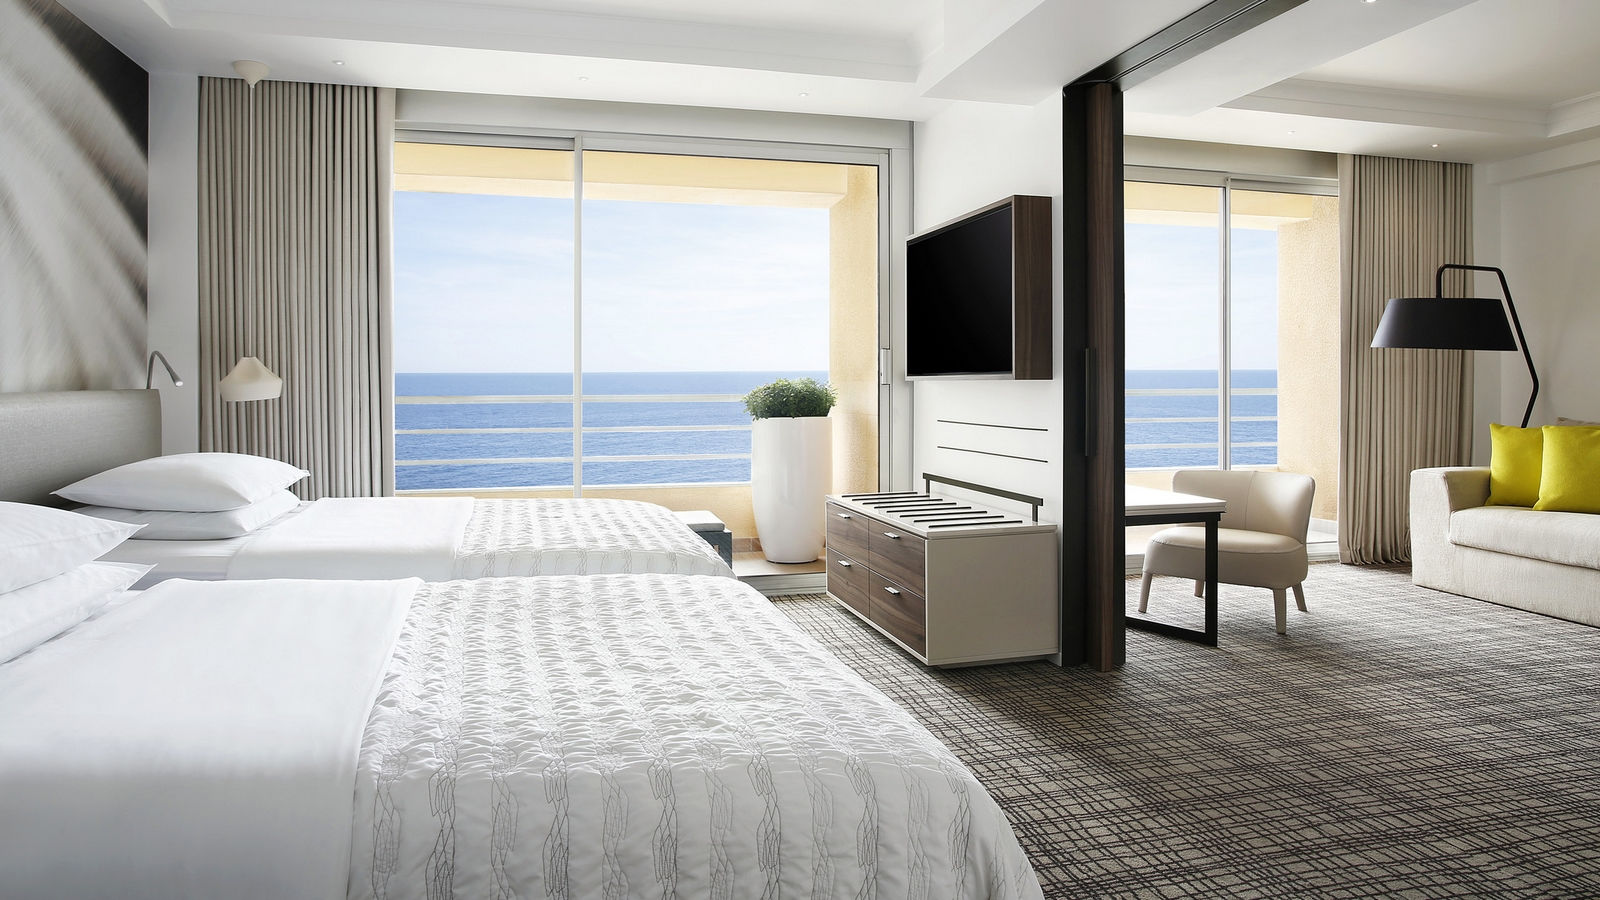 Suite at Le Méridien Beach Plaza